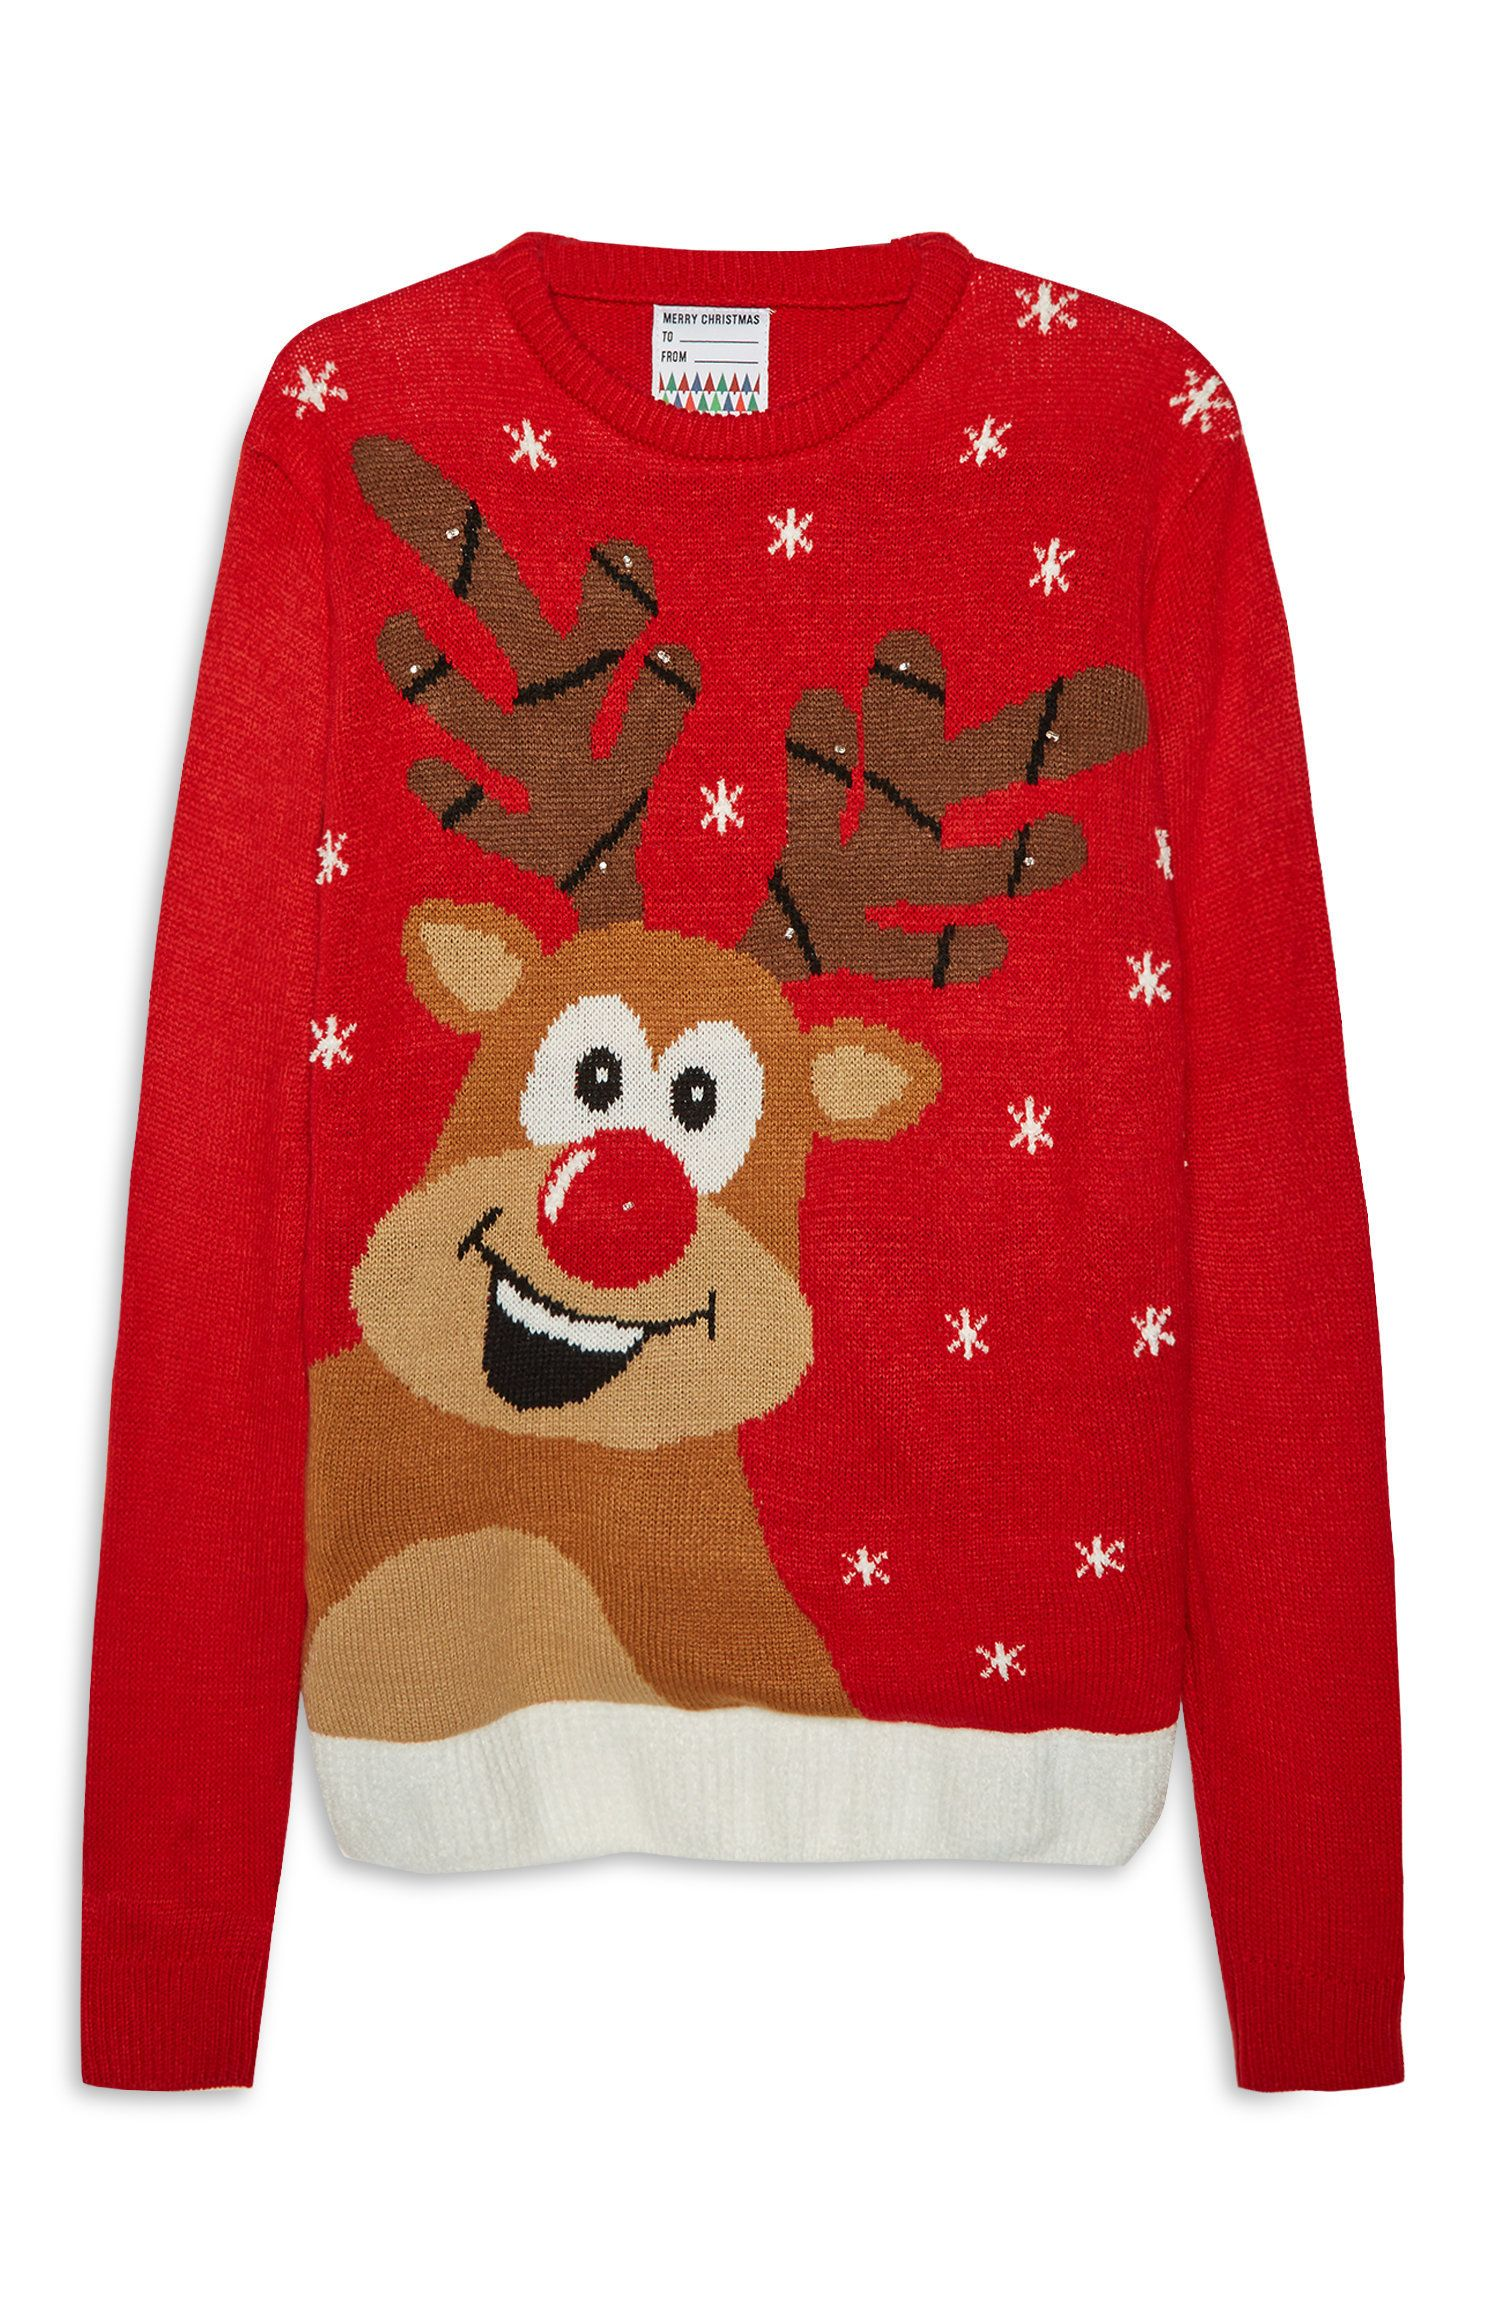 Primark's Christmas Jumpers For Men Are Just As Cute As Its Women's